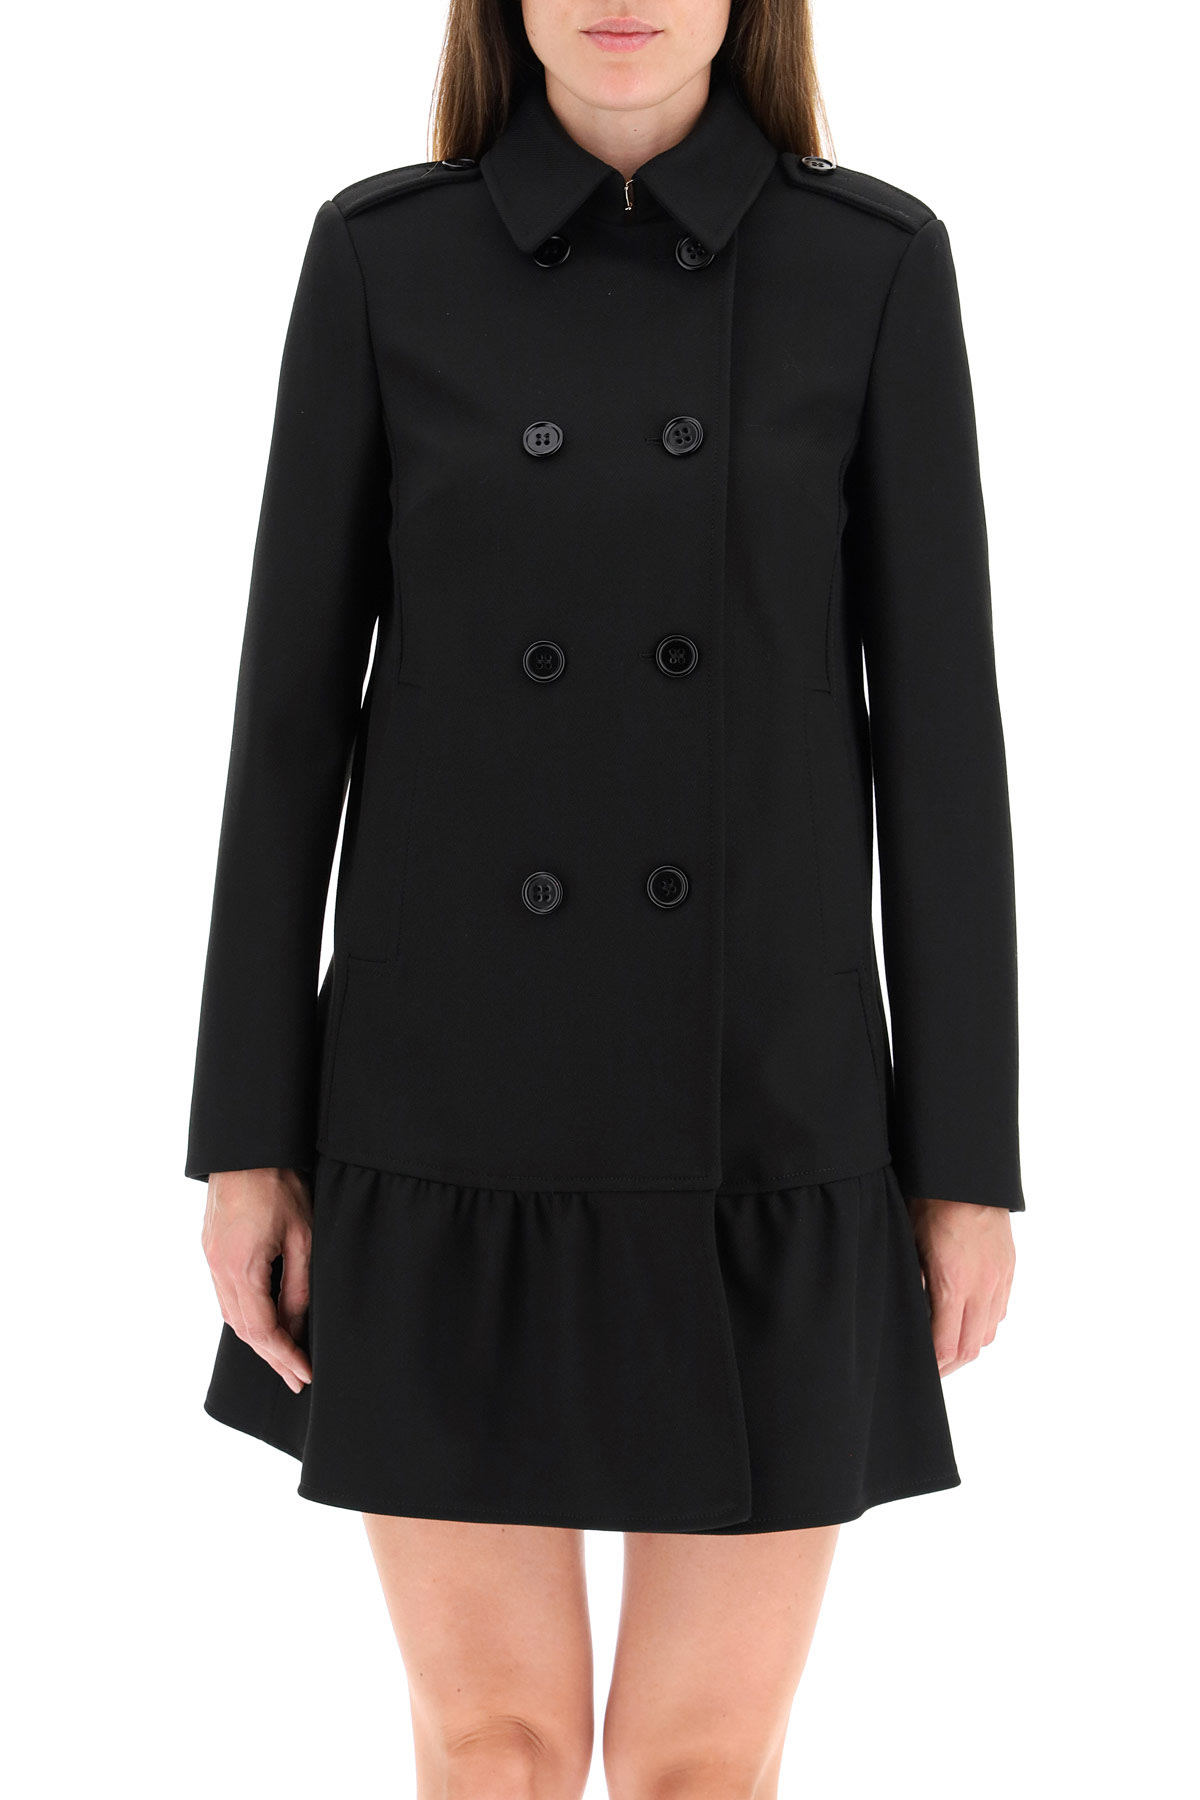 Red Valentino double-breasted coat in tricotine tech with flouced hem. It features pointed collar with hook closure, epaulettes, side pockets, decorative martingale with buttons. The model is 177 cm tall and wears a size IT 38. Composition: 72% poliestere, 26% viscosa, 02% elastan